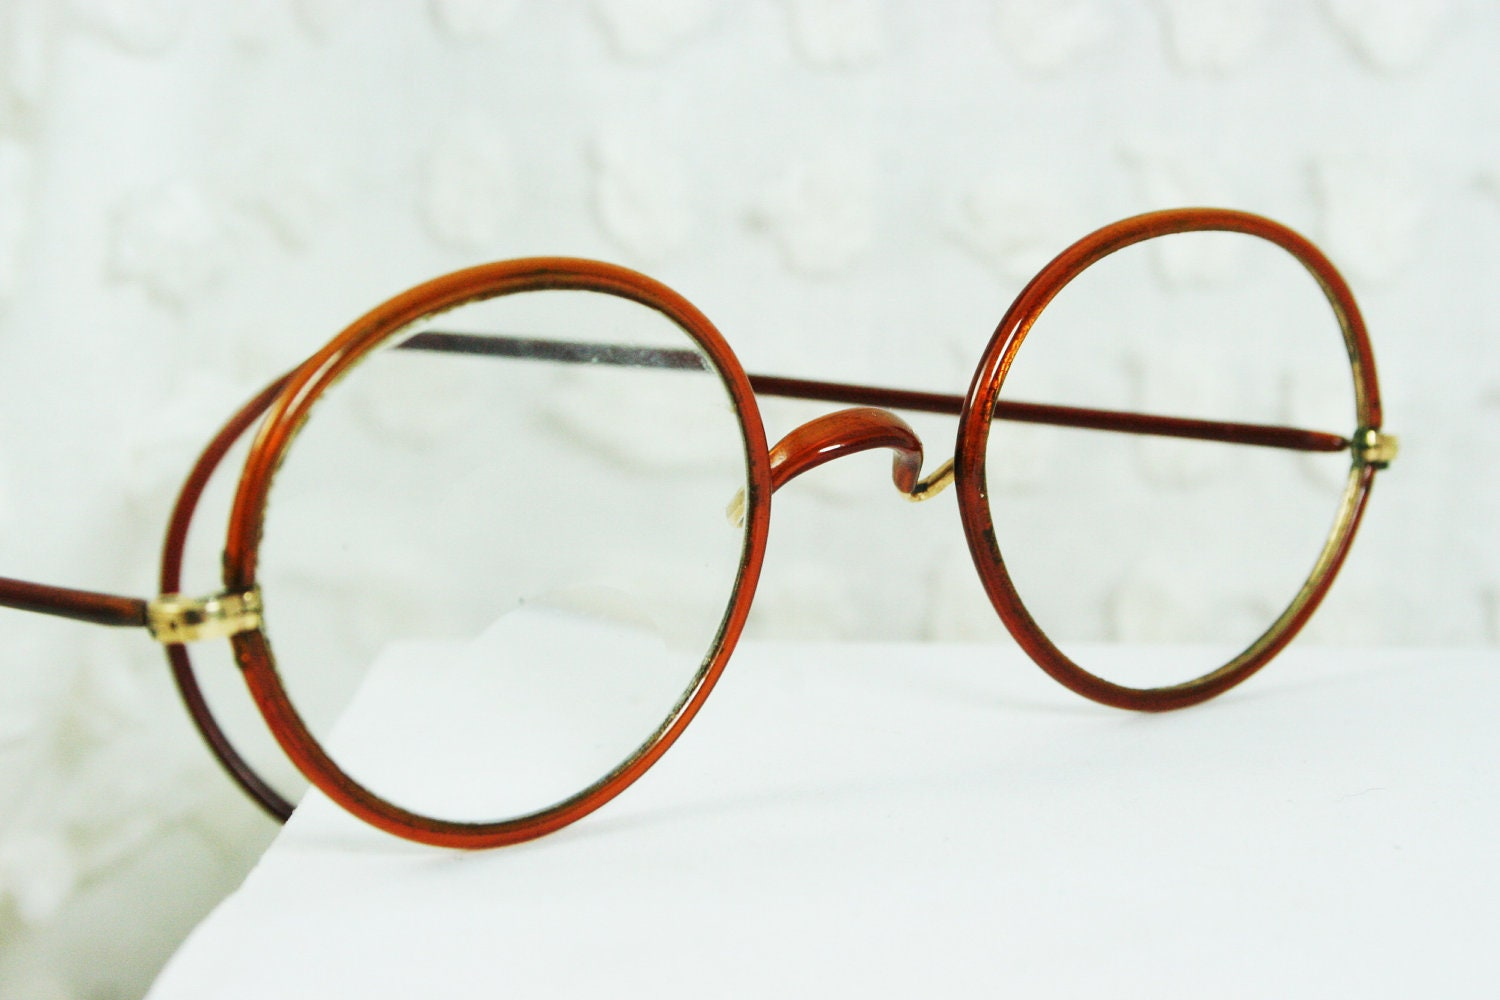 Glasses Frames Cable Temple : 30s Eyeglasses 1930s Round Glasses Butterscotch by DIAeyewear